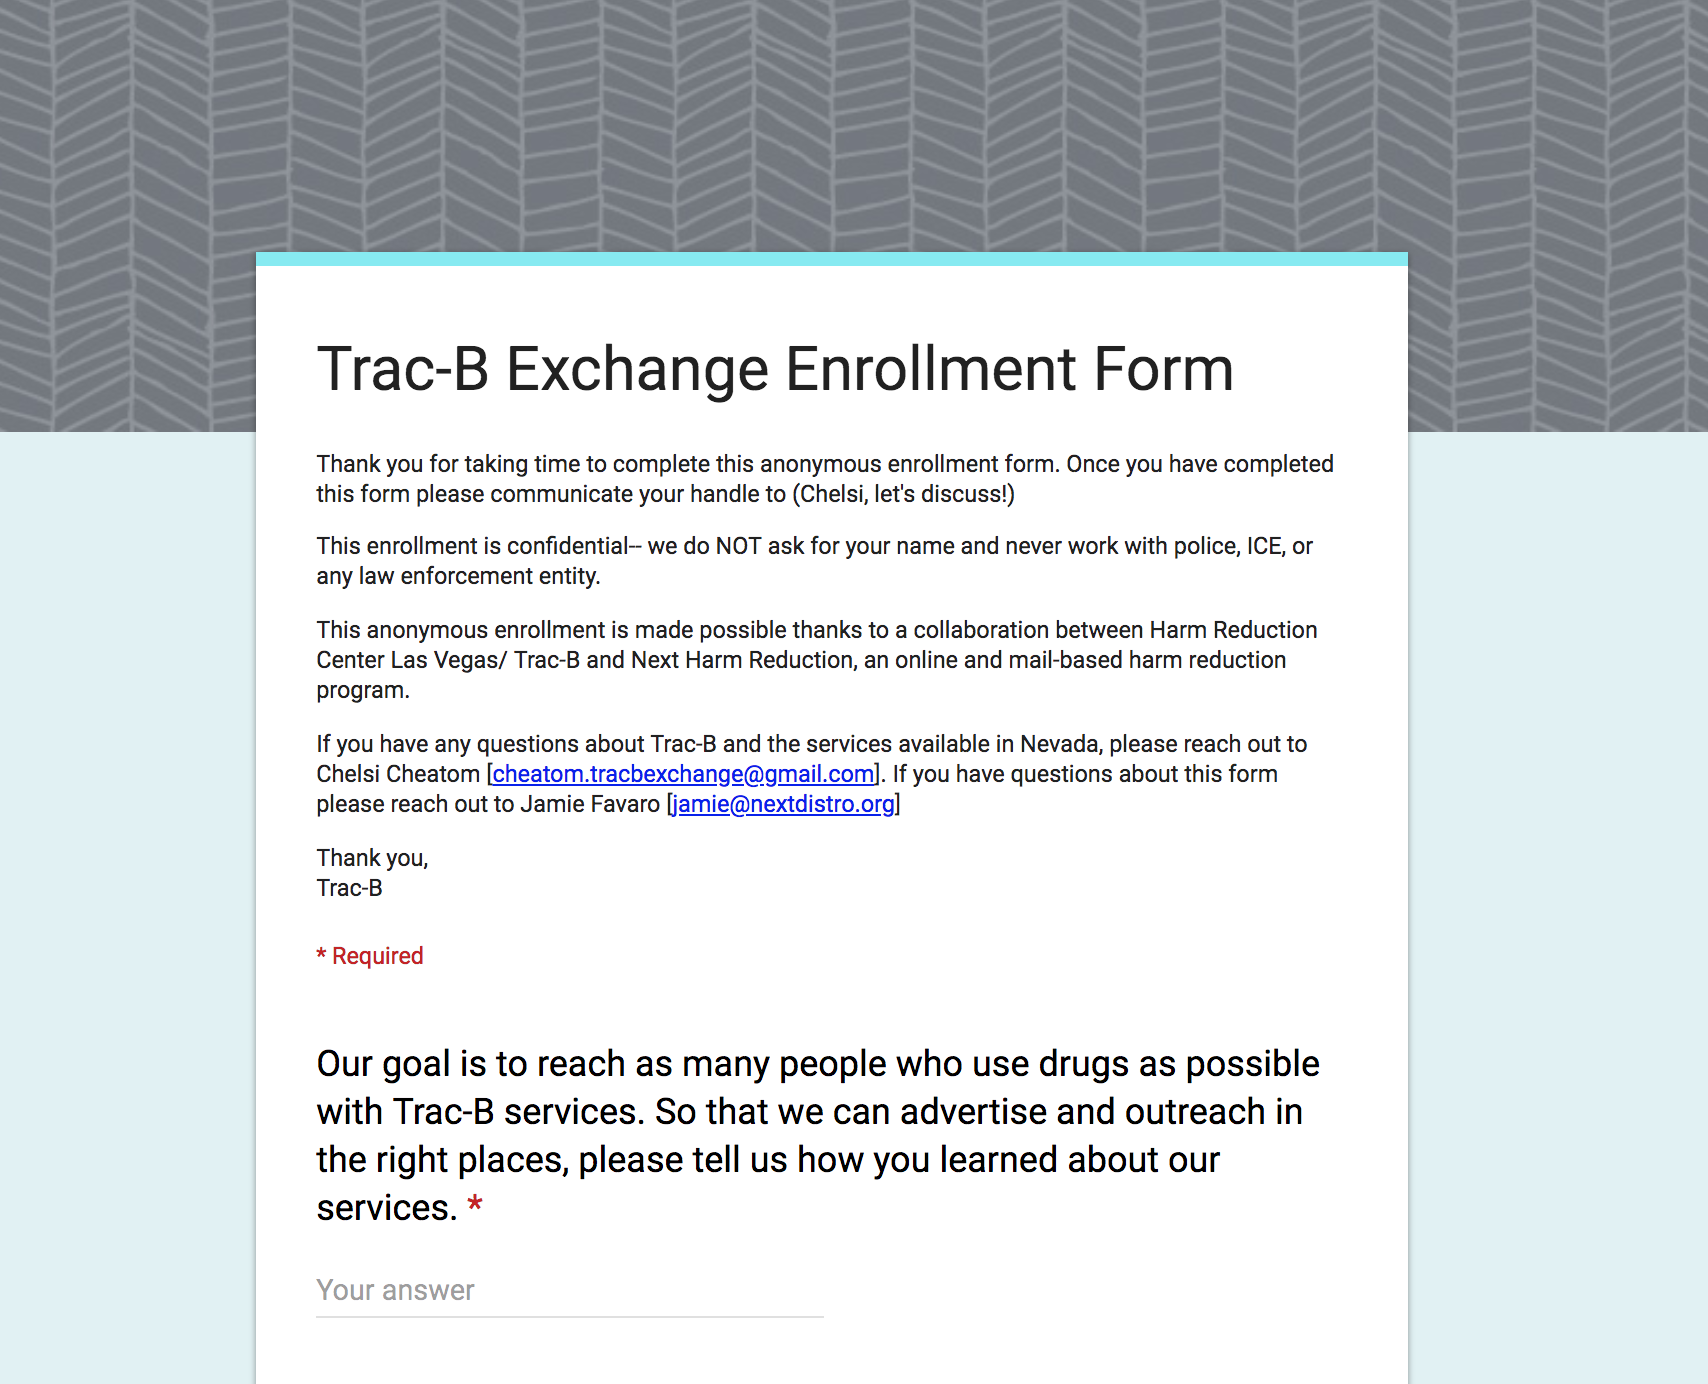 Click on this image to begin enrollment - Our enrollment form will ask you some basic information such as your demographics and zip code. We'll also ask about what drugs you use, if you have a primary care physician, and any major medical problems. If you have any questions about our services or have concerns about filling out this enrollment you can call or text 702-376-2186 or email cheatom.tracbexchange@gmail.com